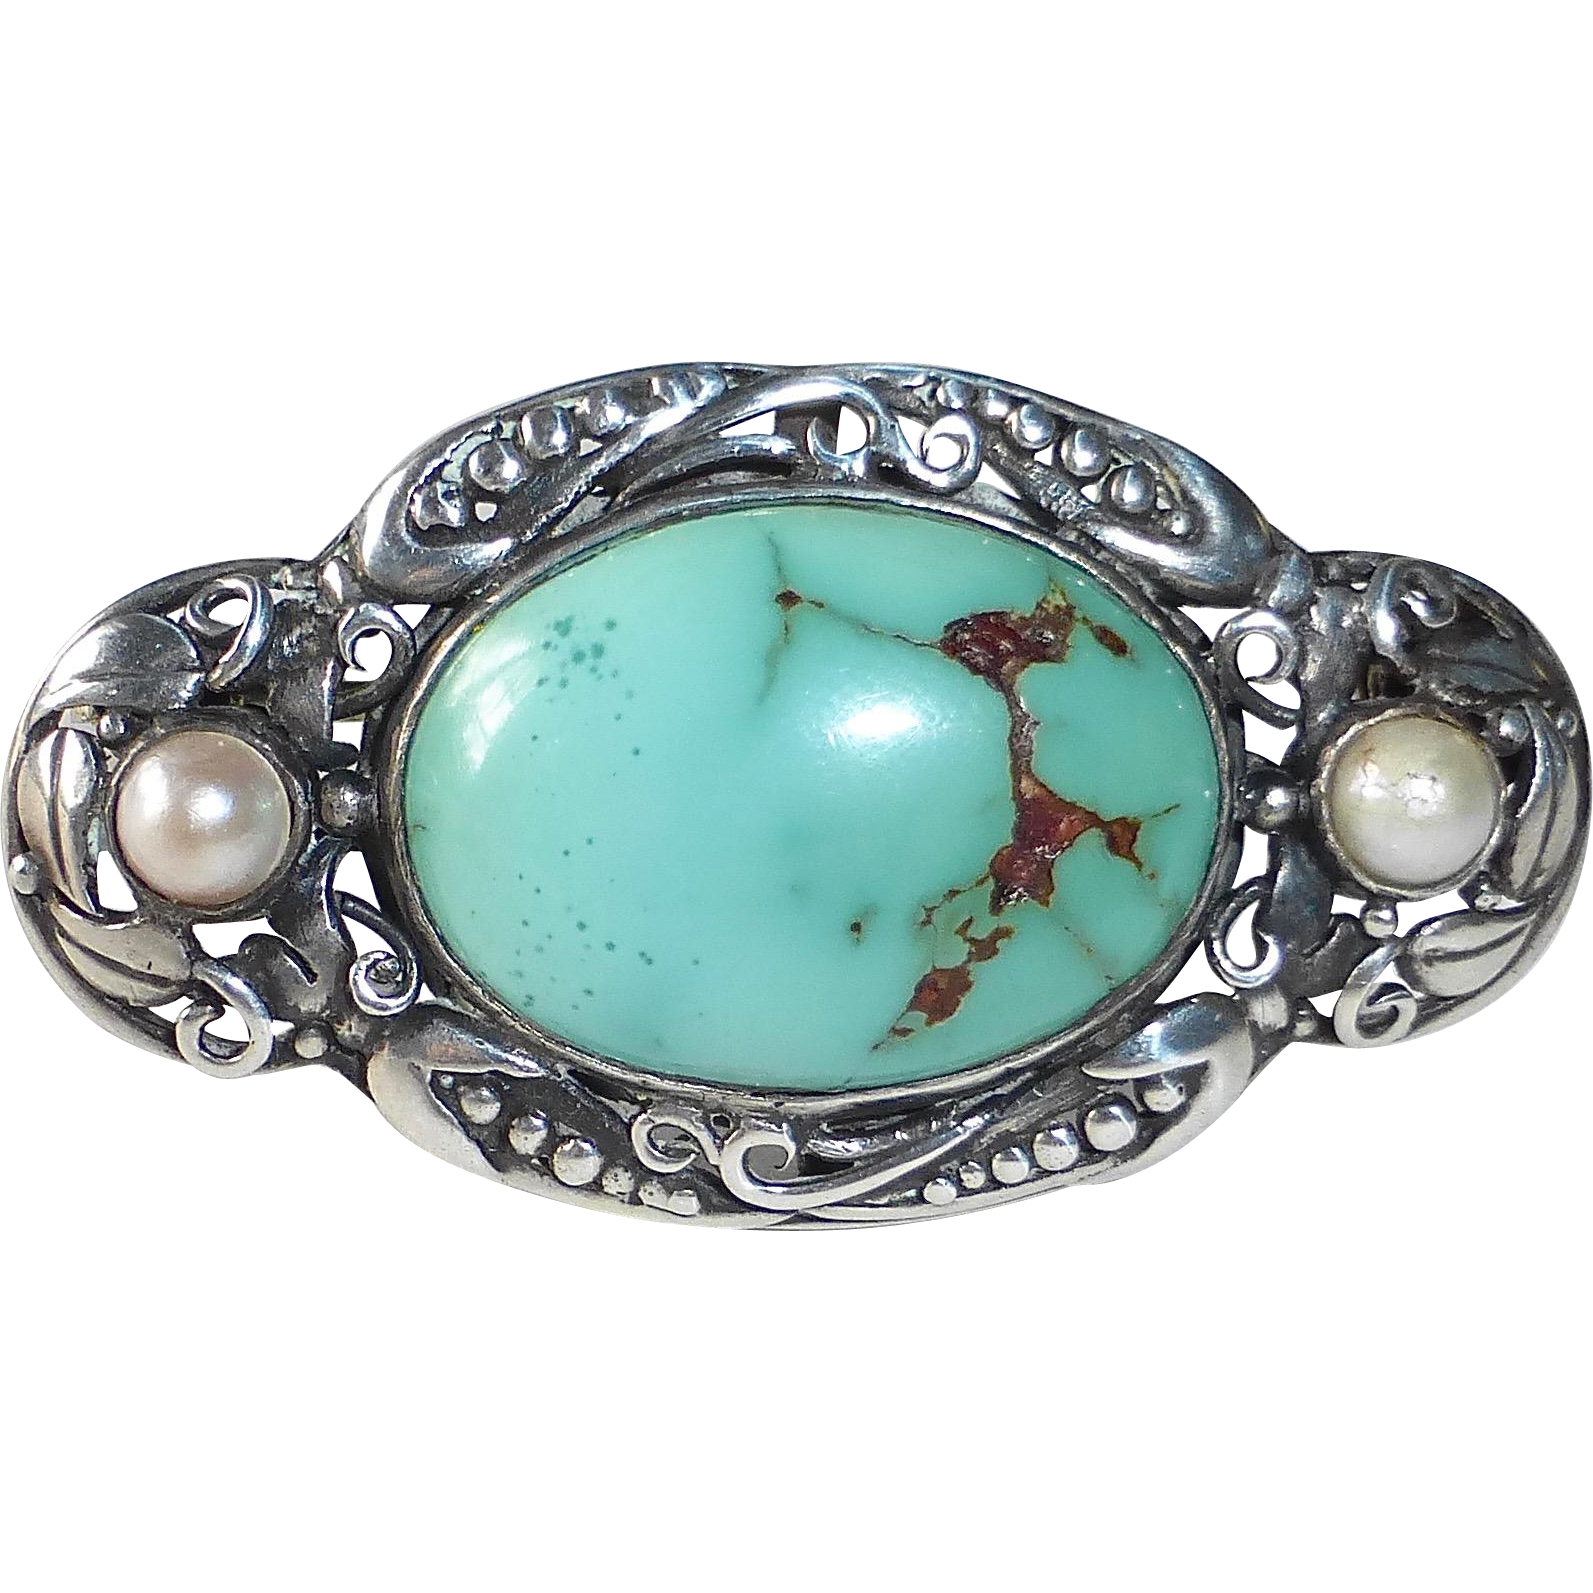 Turquoise Pin with Ornate Sterling Design